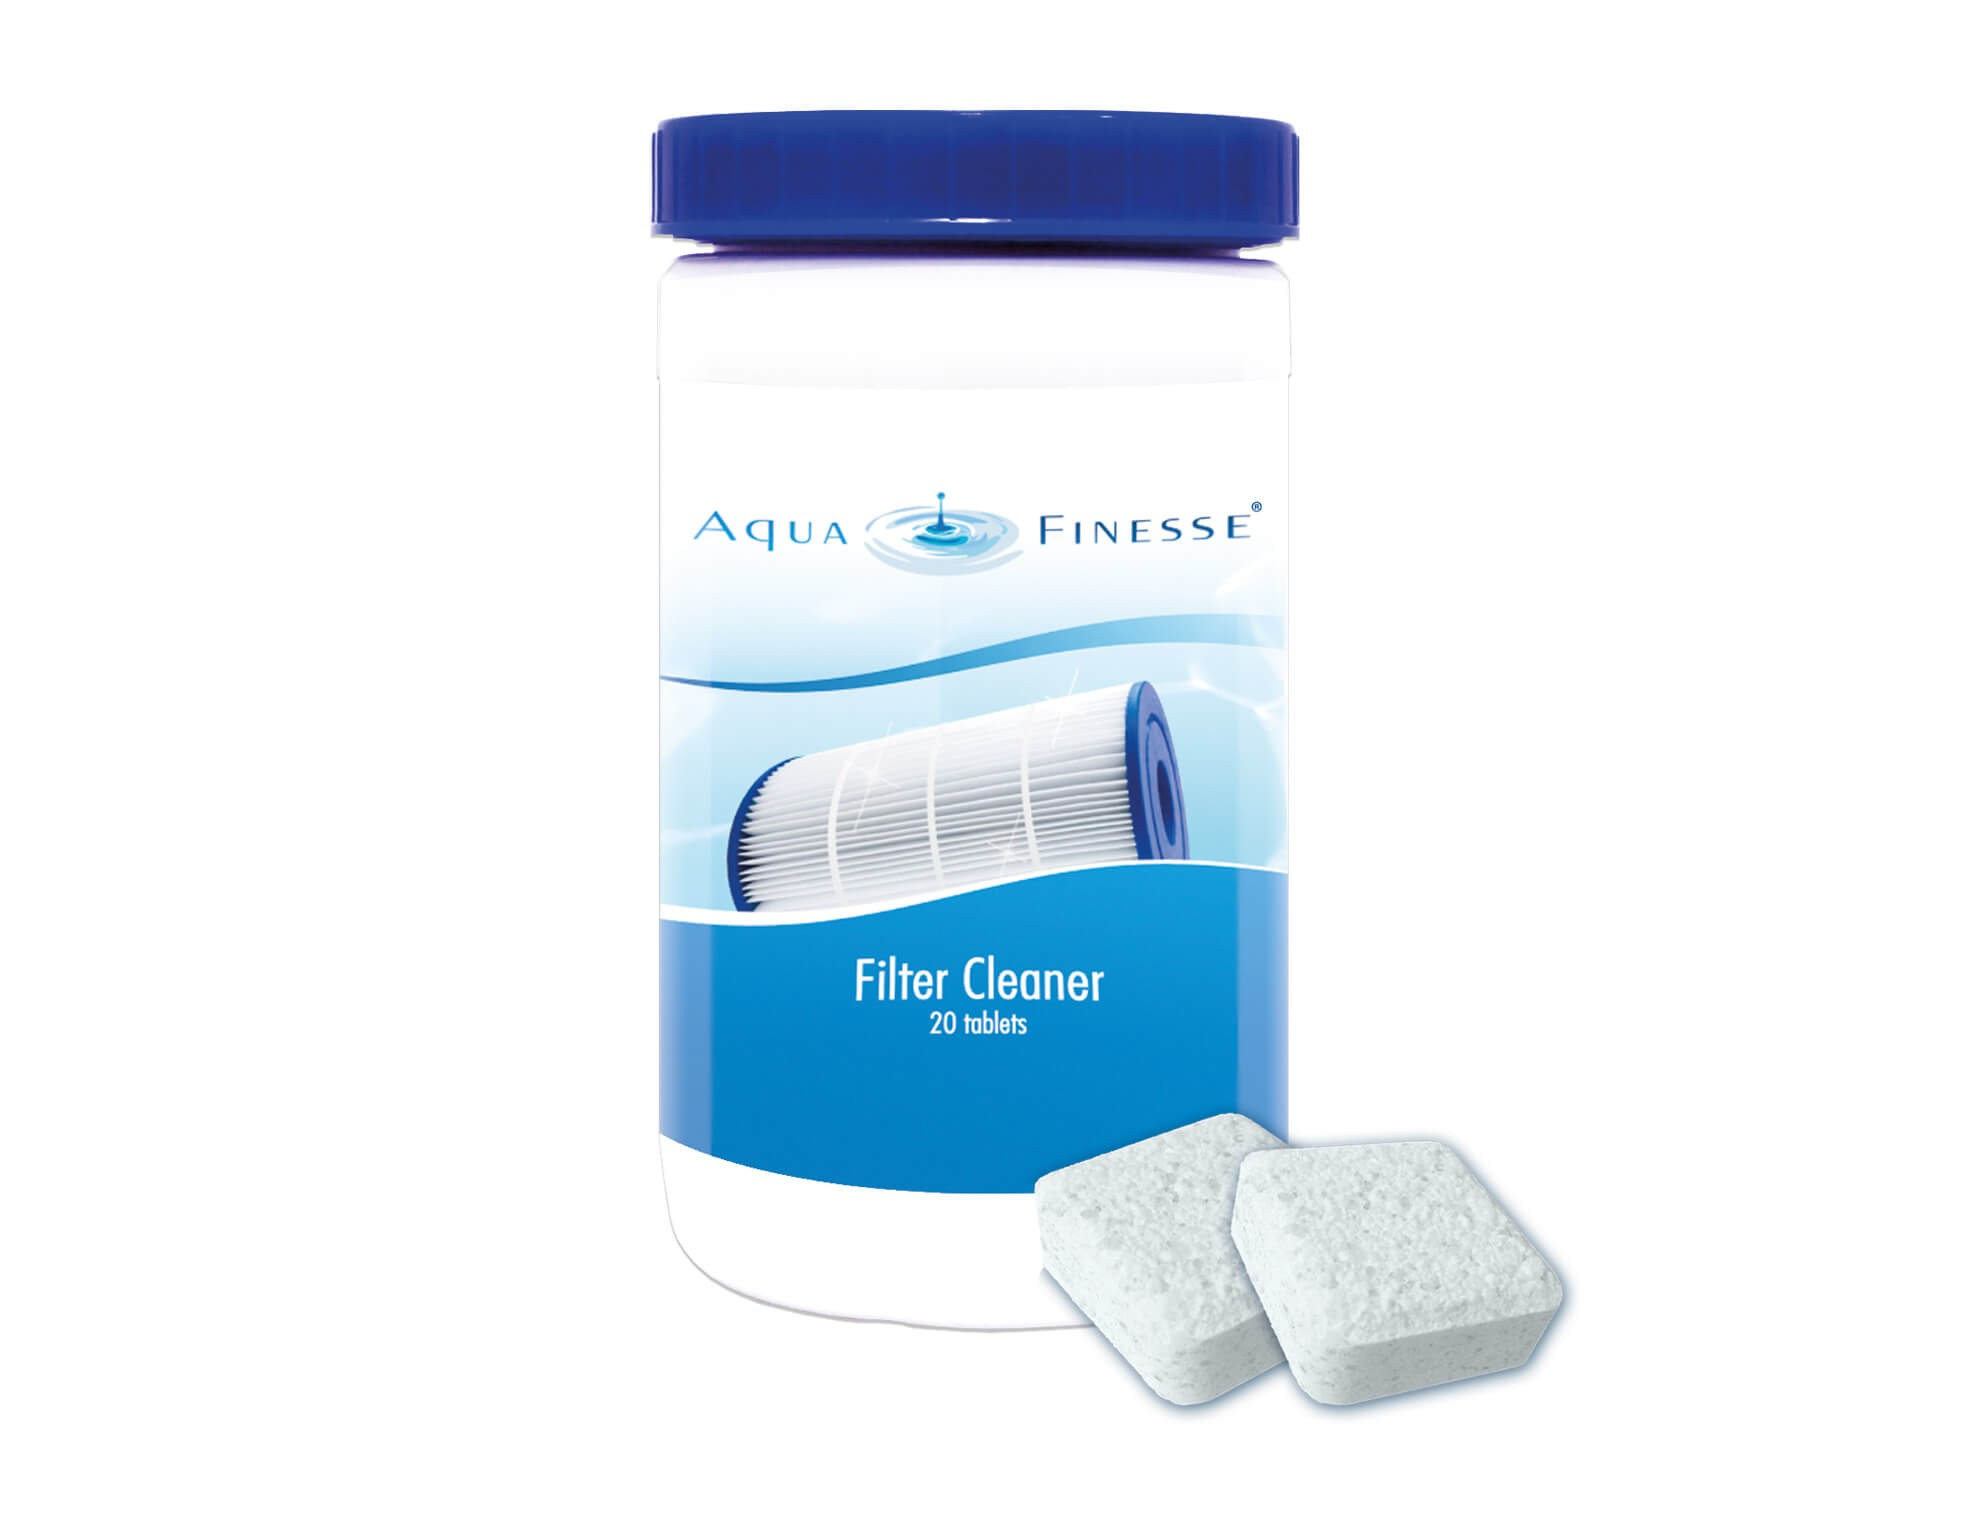 Pool Reinigung Filter Aquafinesse Filter Cleaner Tabletten Filter Reiniger